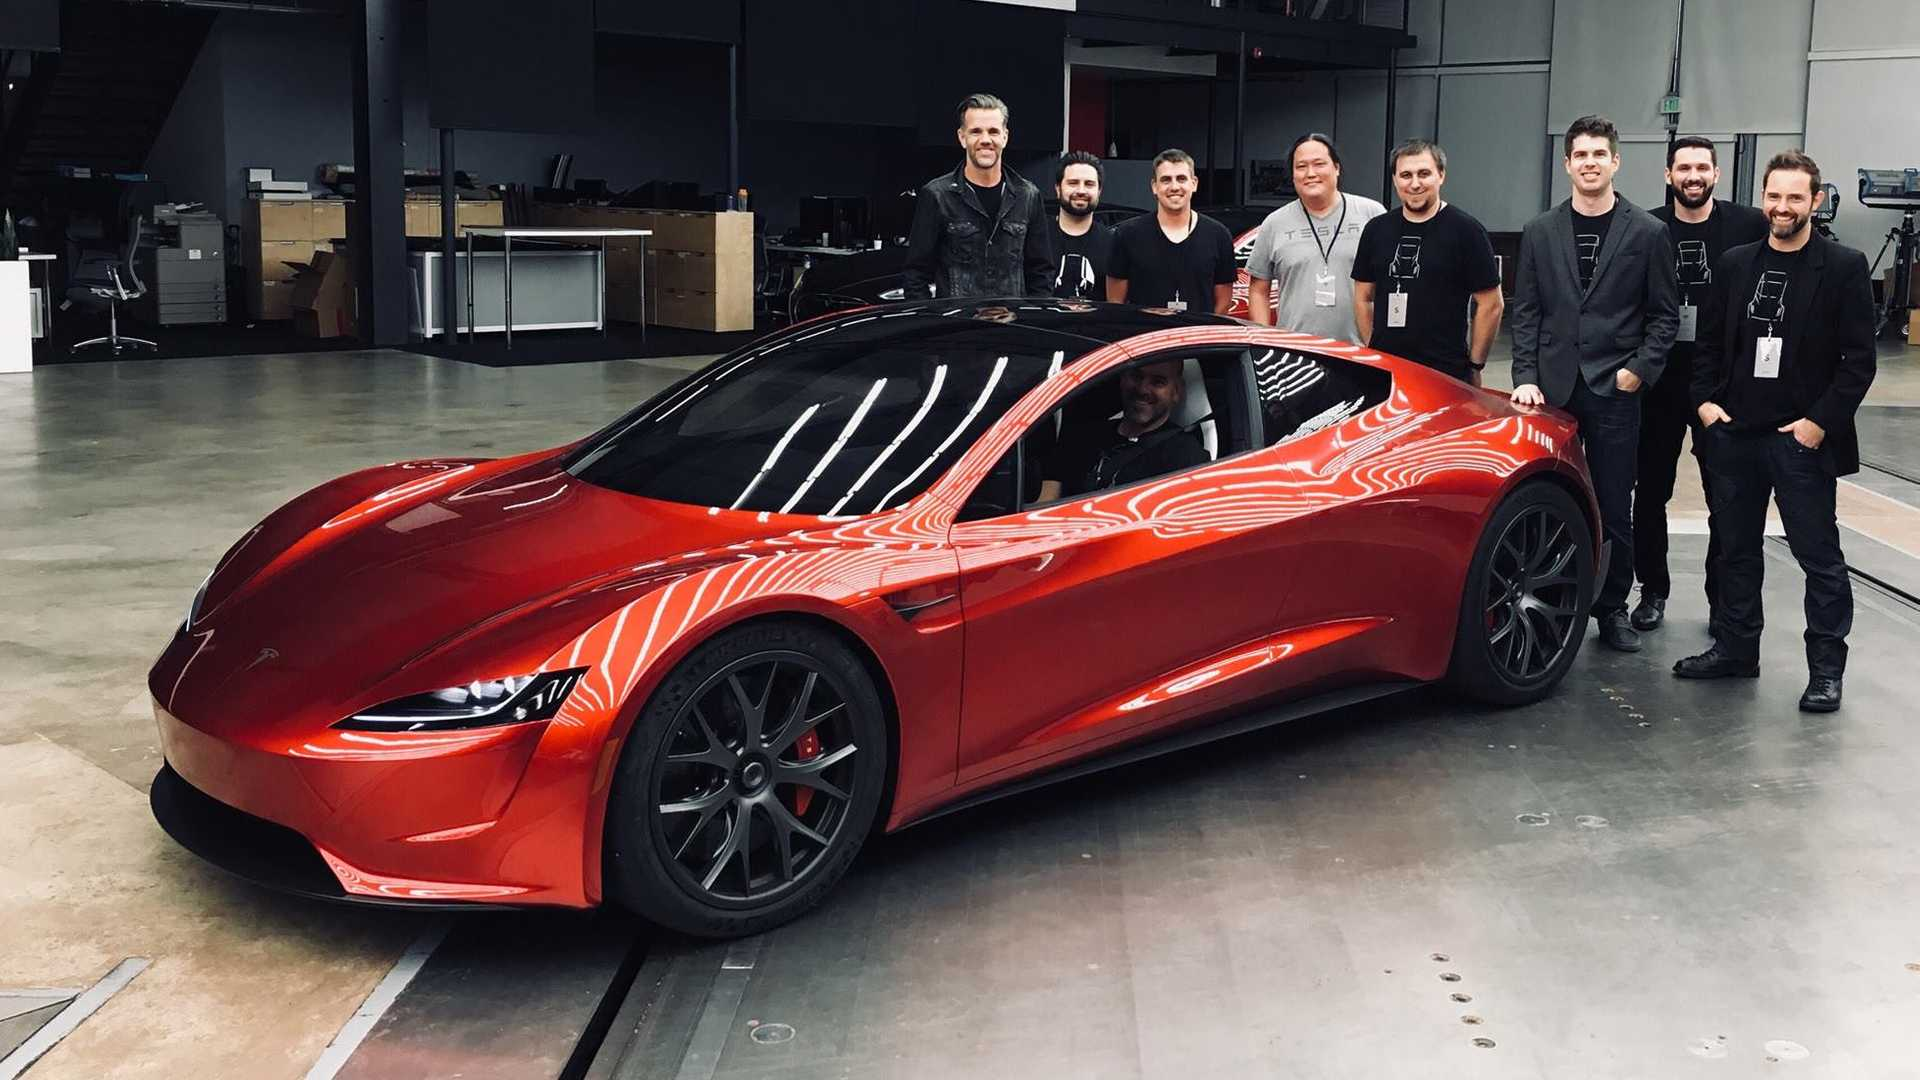 New Tesla Roadster Images Emerge